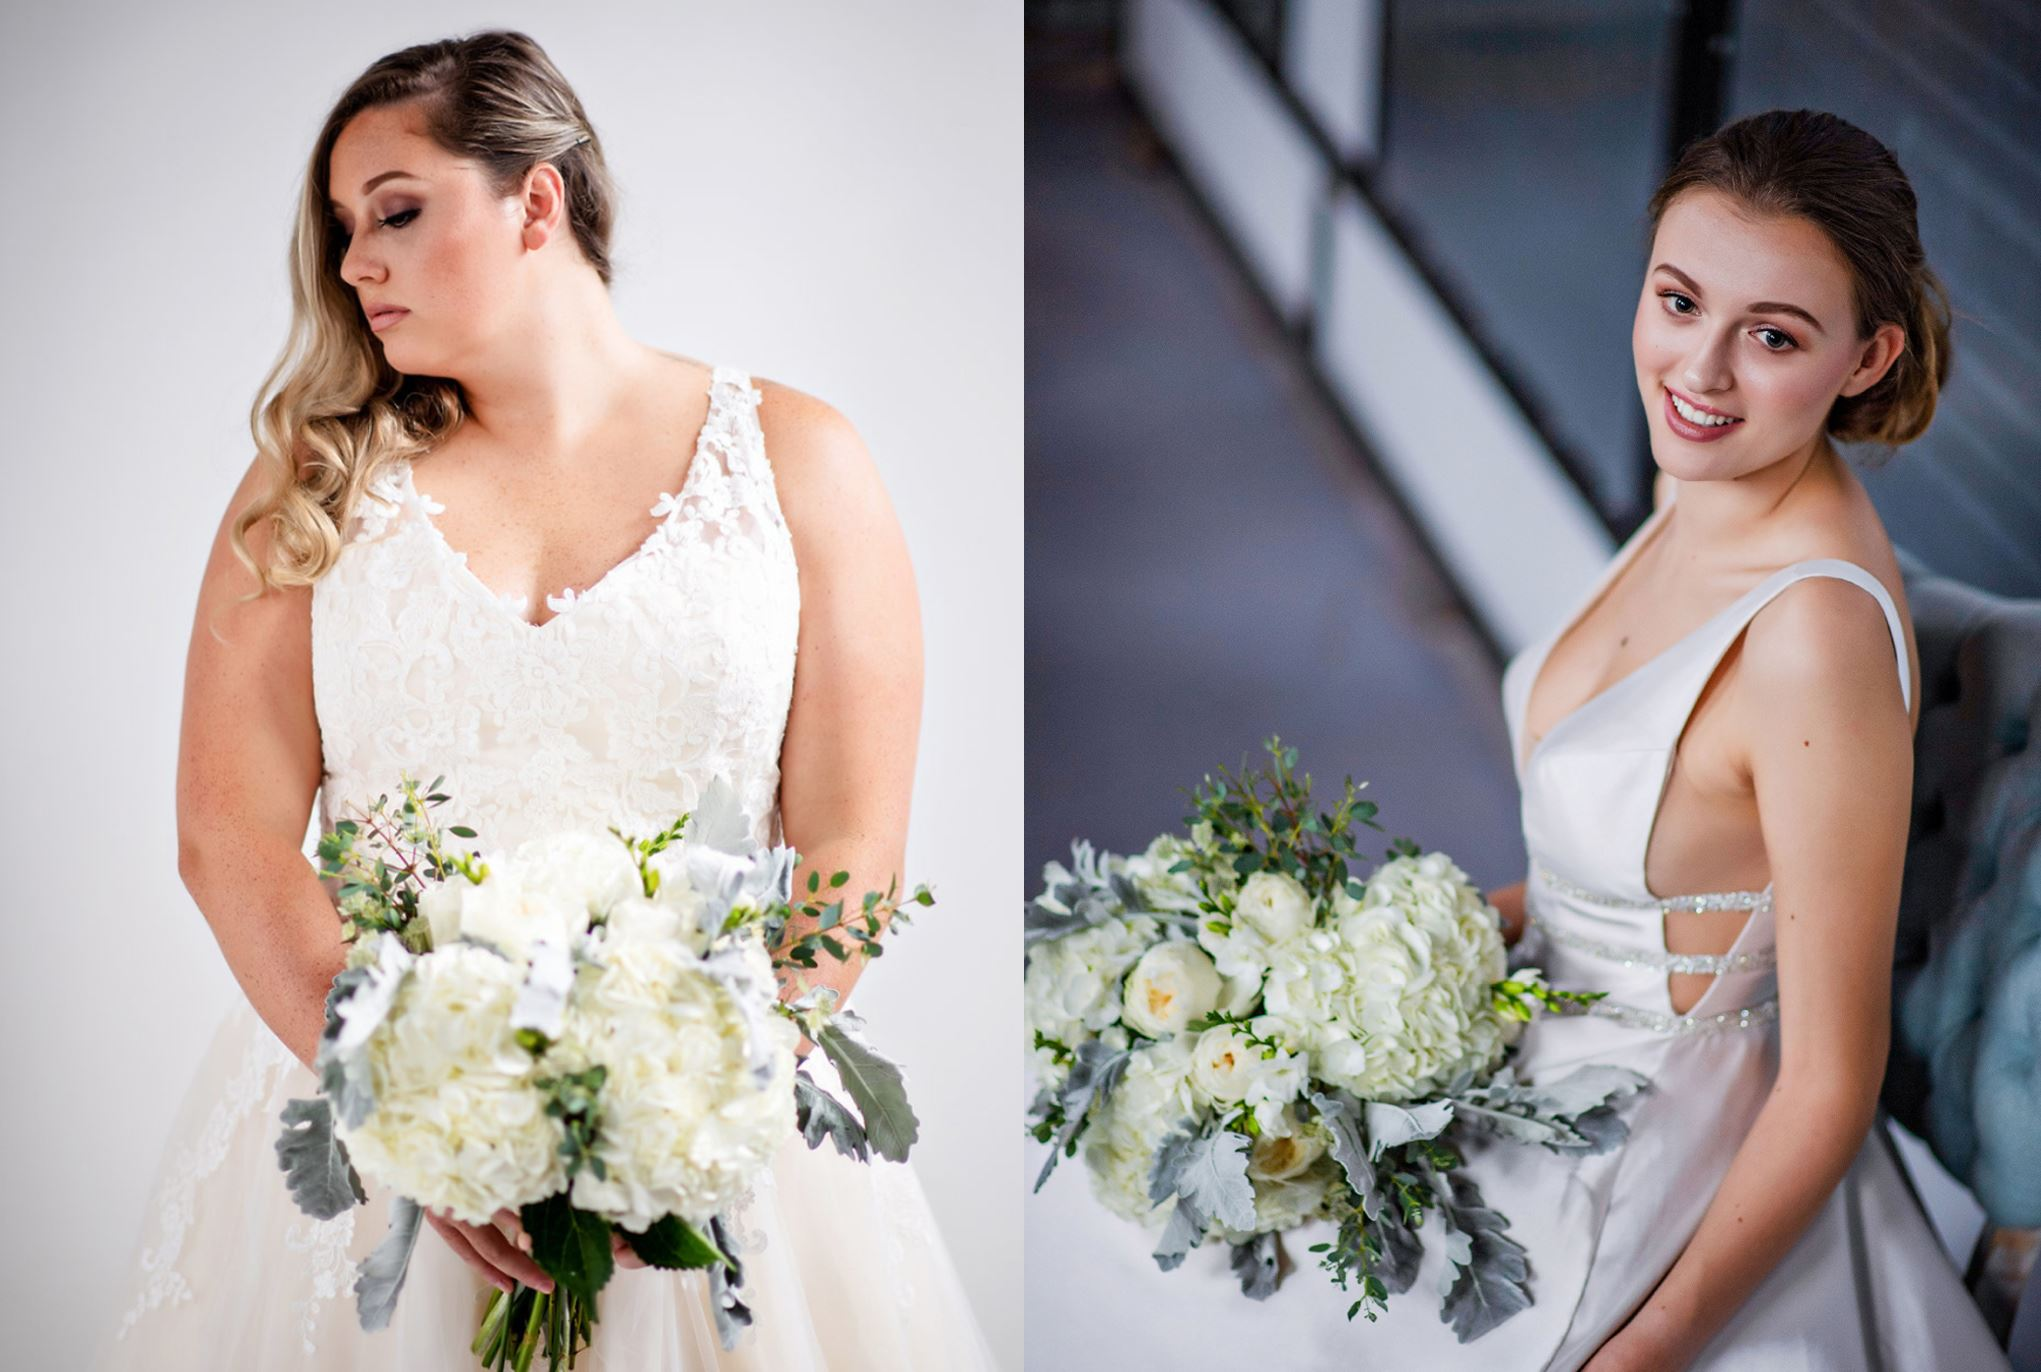 brides with bouquets in off the rack wedding dresses from here and now bridal in virginia beach